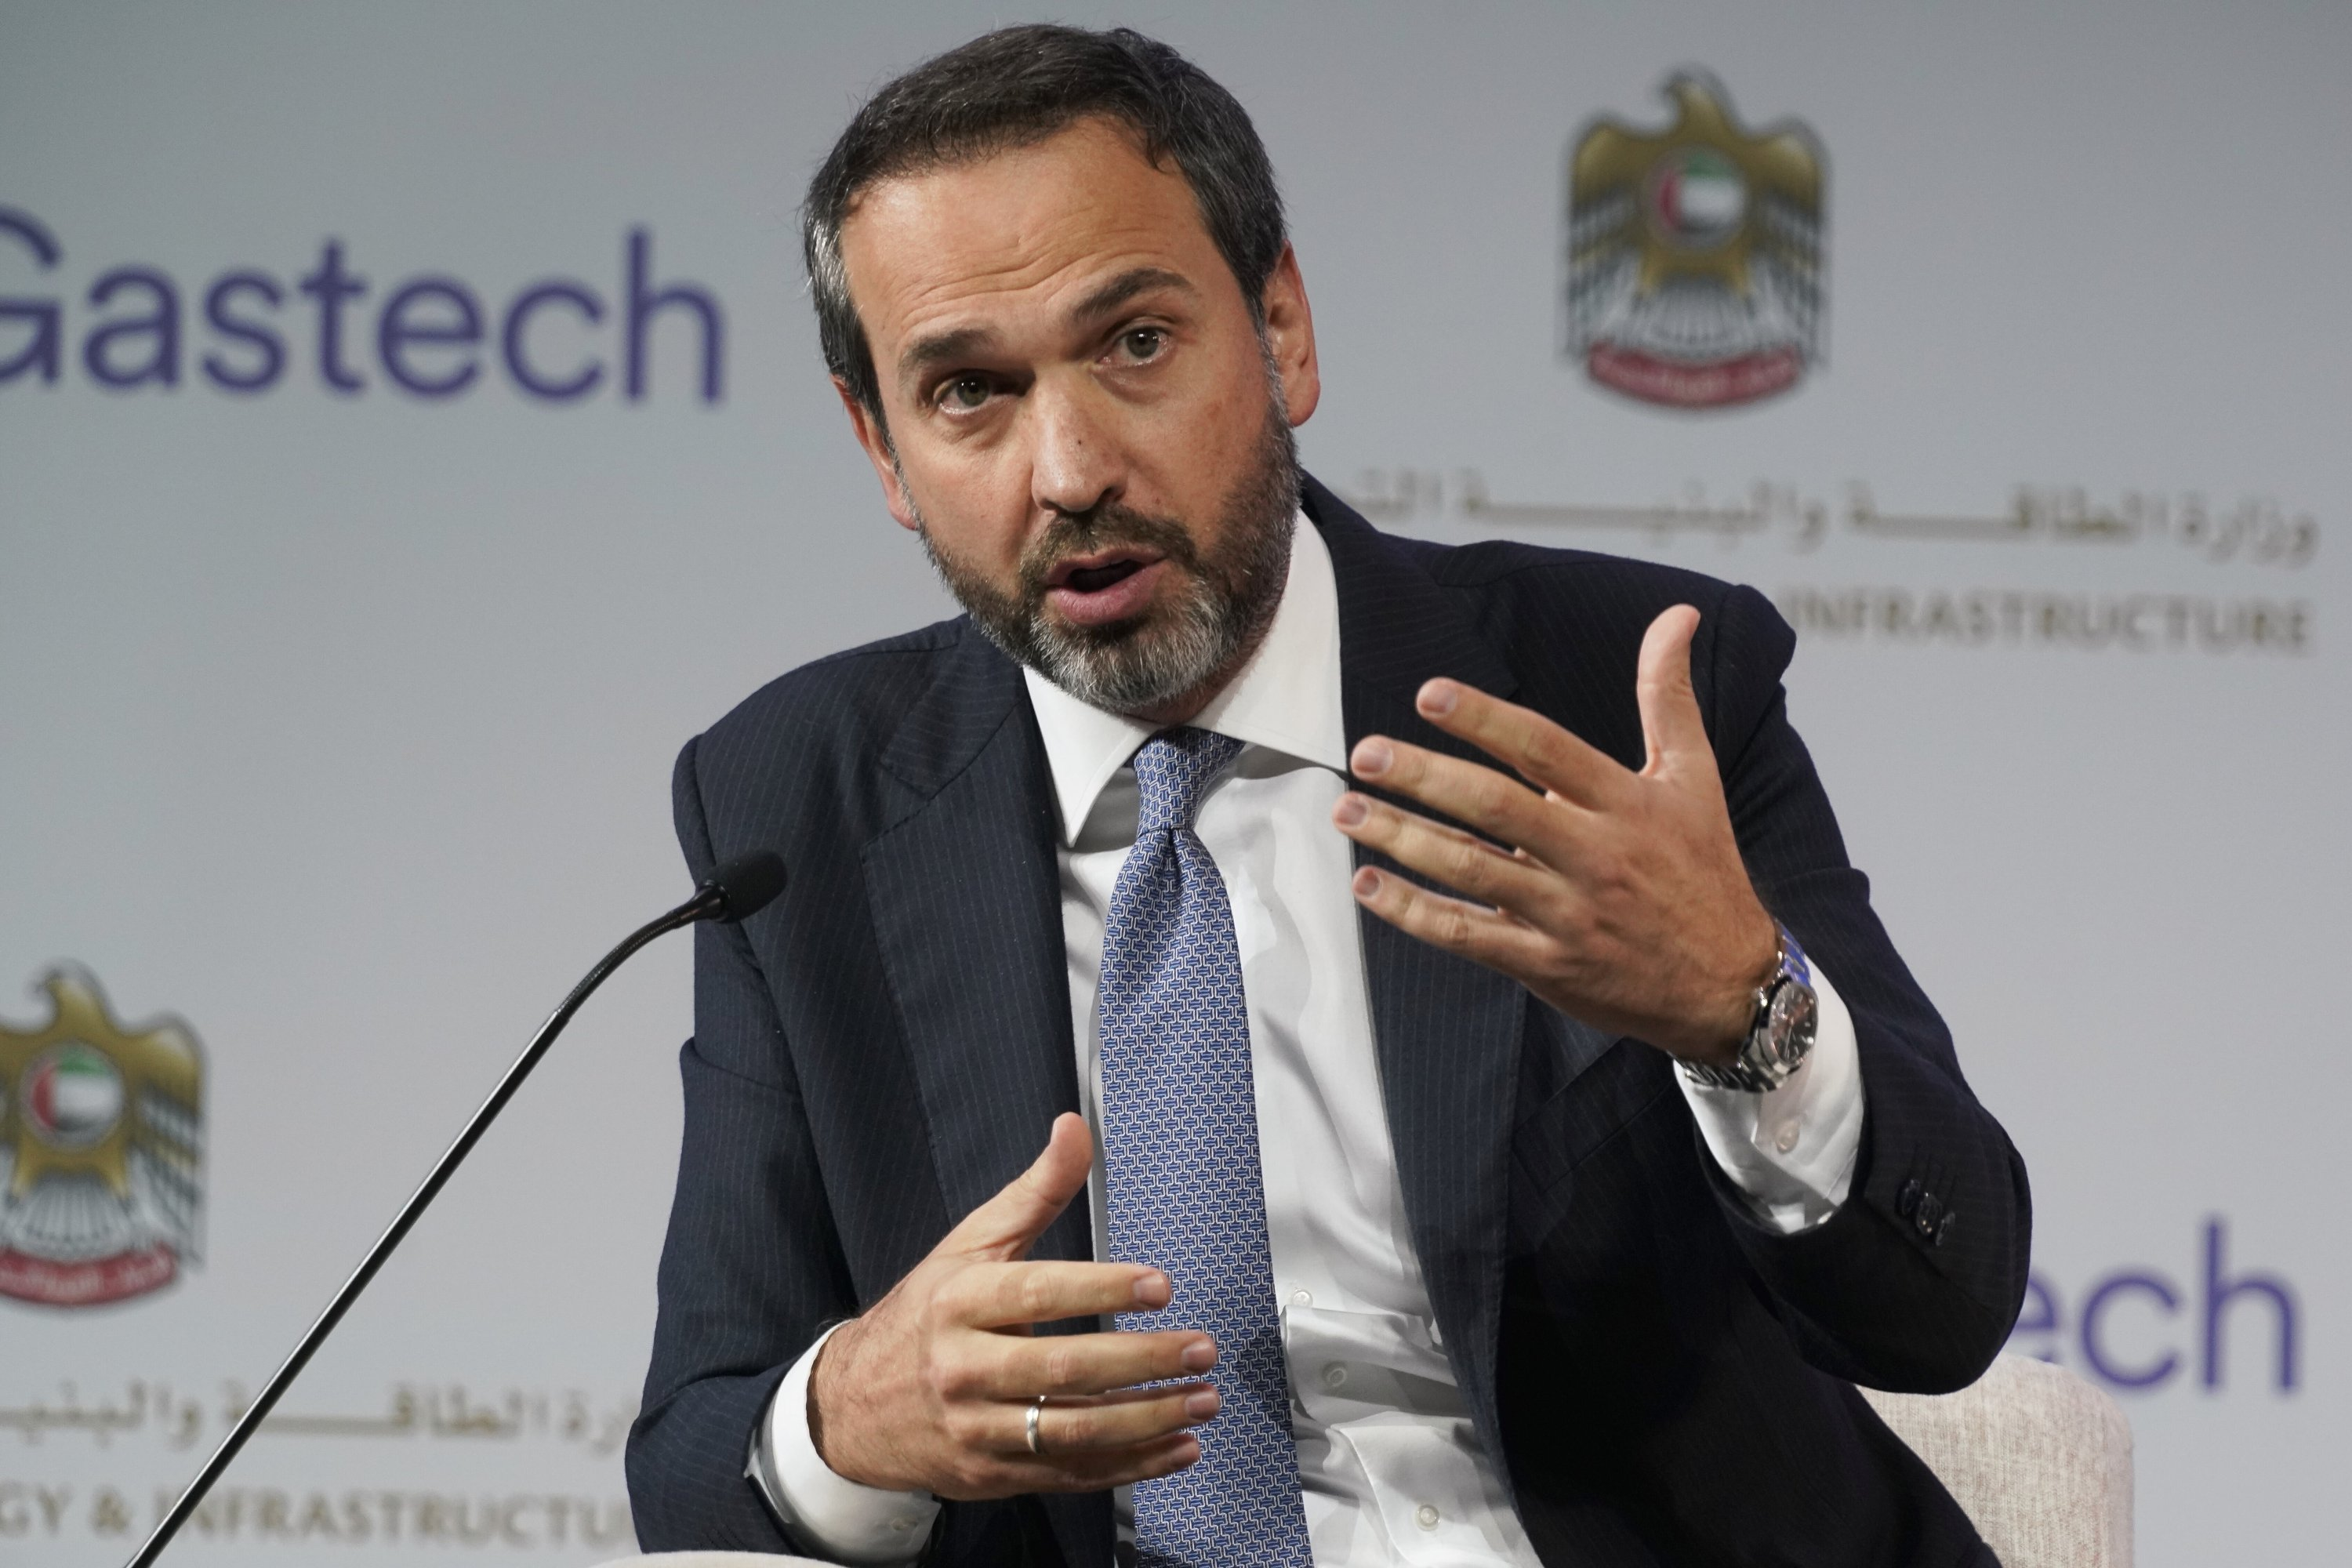 Turkey's Deputy Energy and Natural Resources Minister Alparslan Bayraktar gestures during a discussion on stage at the Gastech 2021 conference in Dubai, United Arab Emirates, Sept. 21, 2021. (AP Photo)